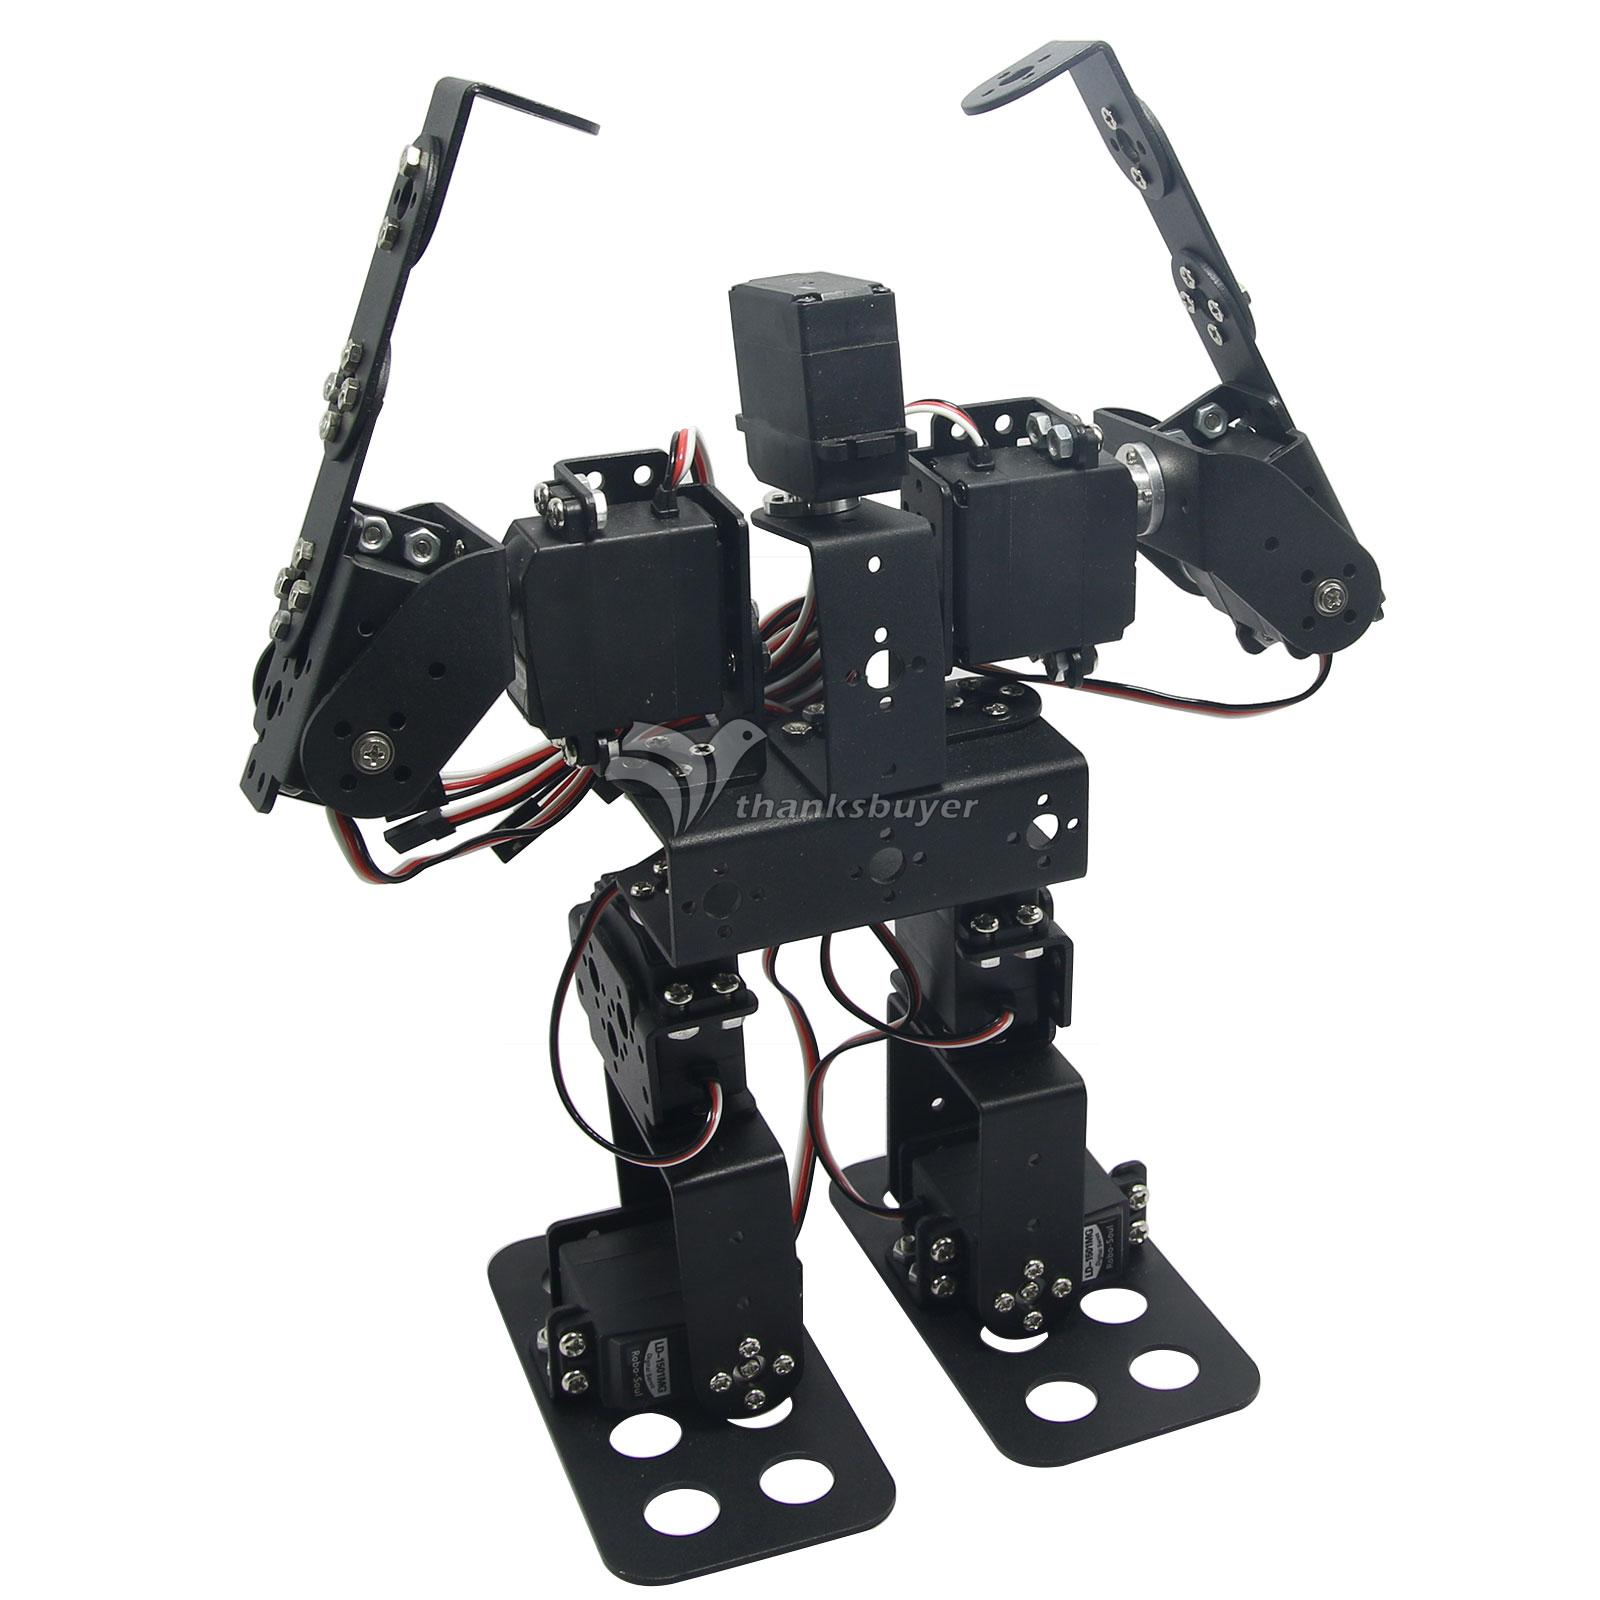 Assembled 9DOF Humanoid Biped Robotic Educational Robot with Bracket LD-1501MG Servo for Racing new 17 degrees of freedom humanoid biped robot teaching and research biped robot platform model no electronic control system